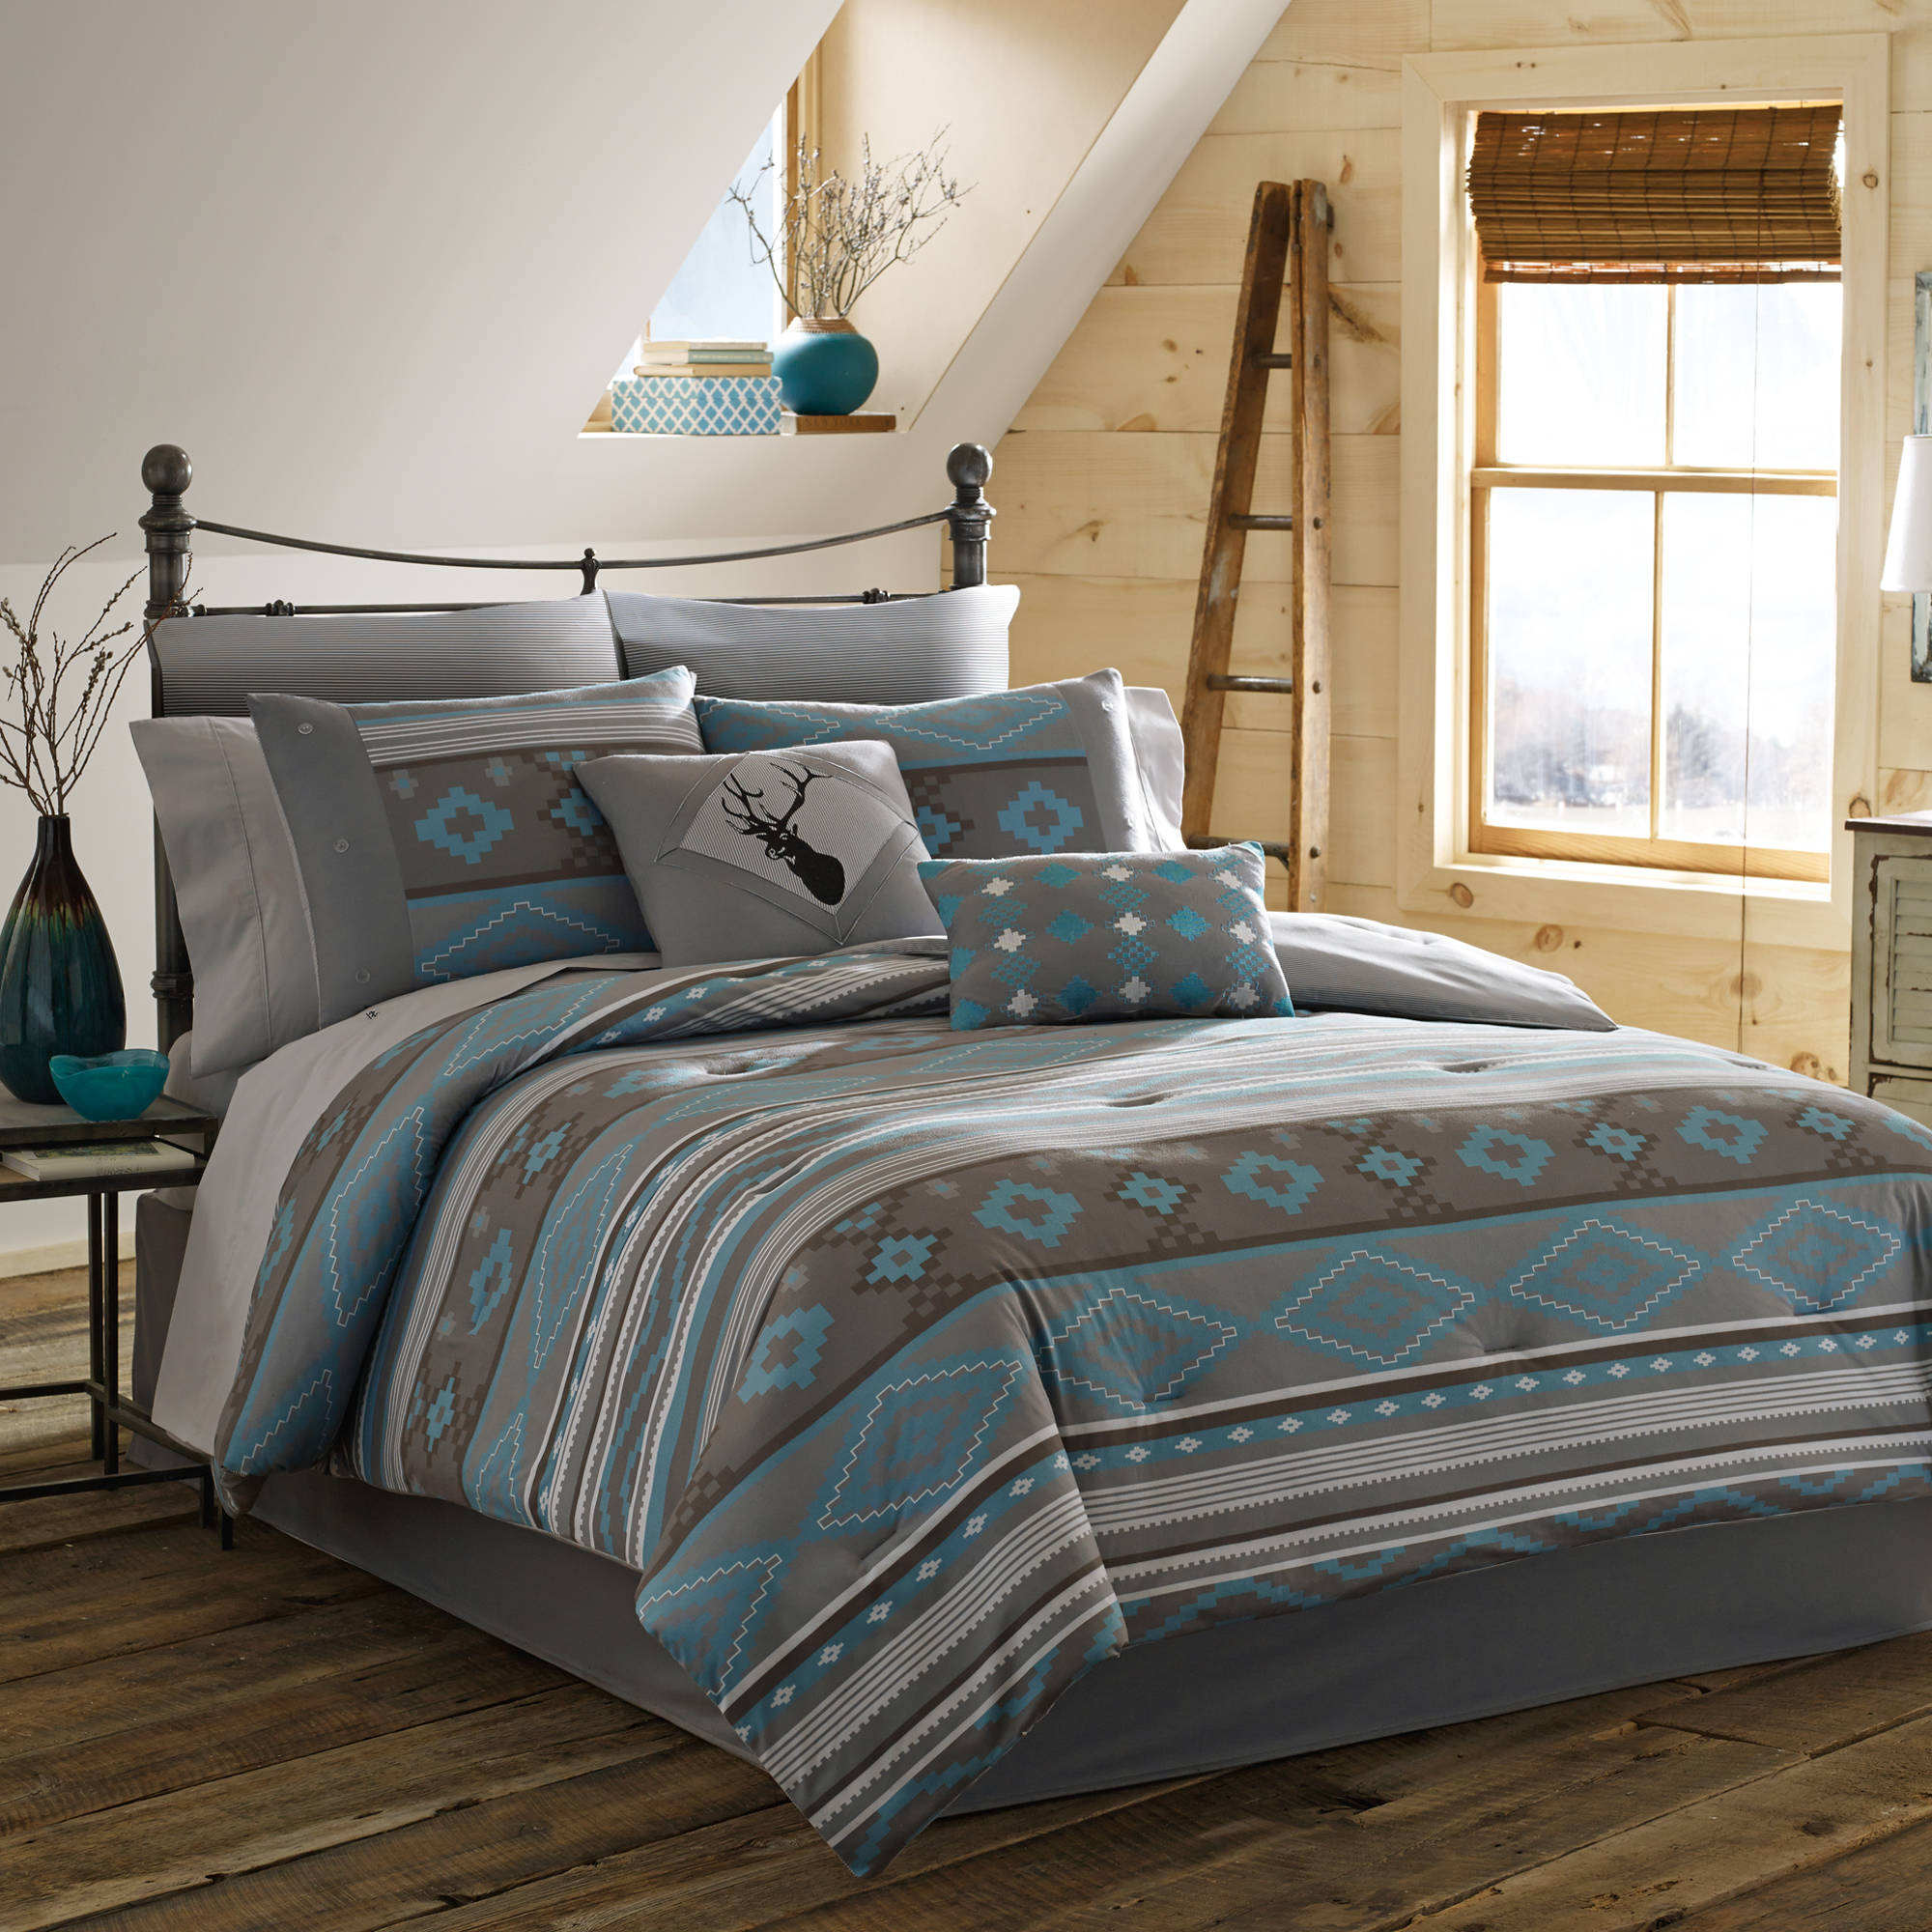 True Timber Southwest Bedding Comforter Set, Teal